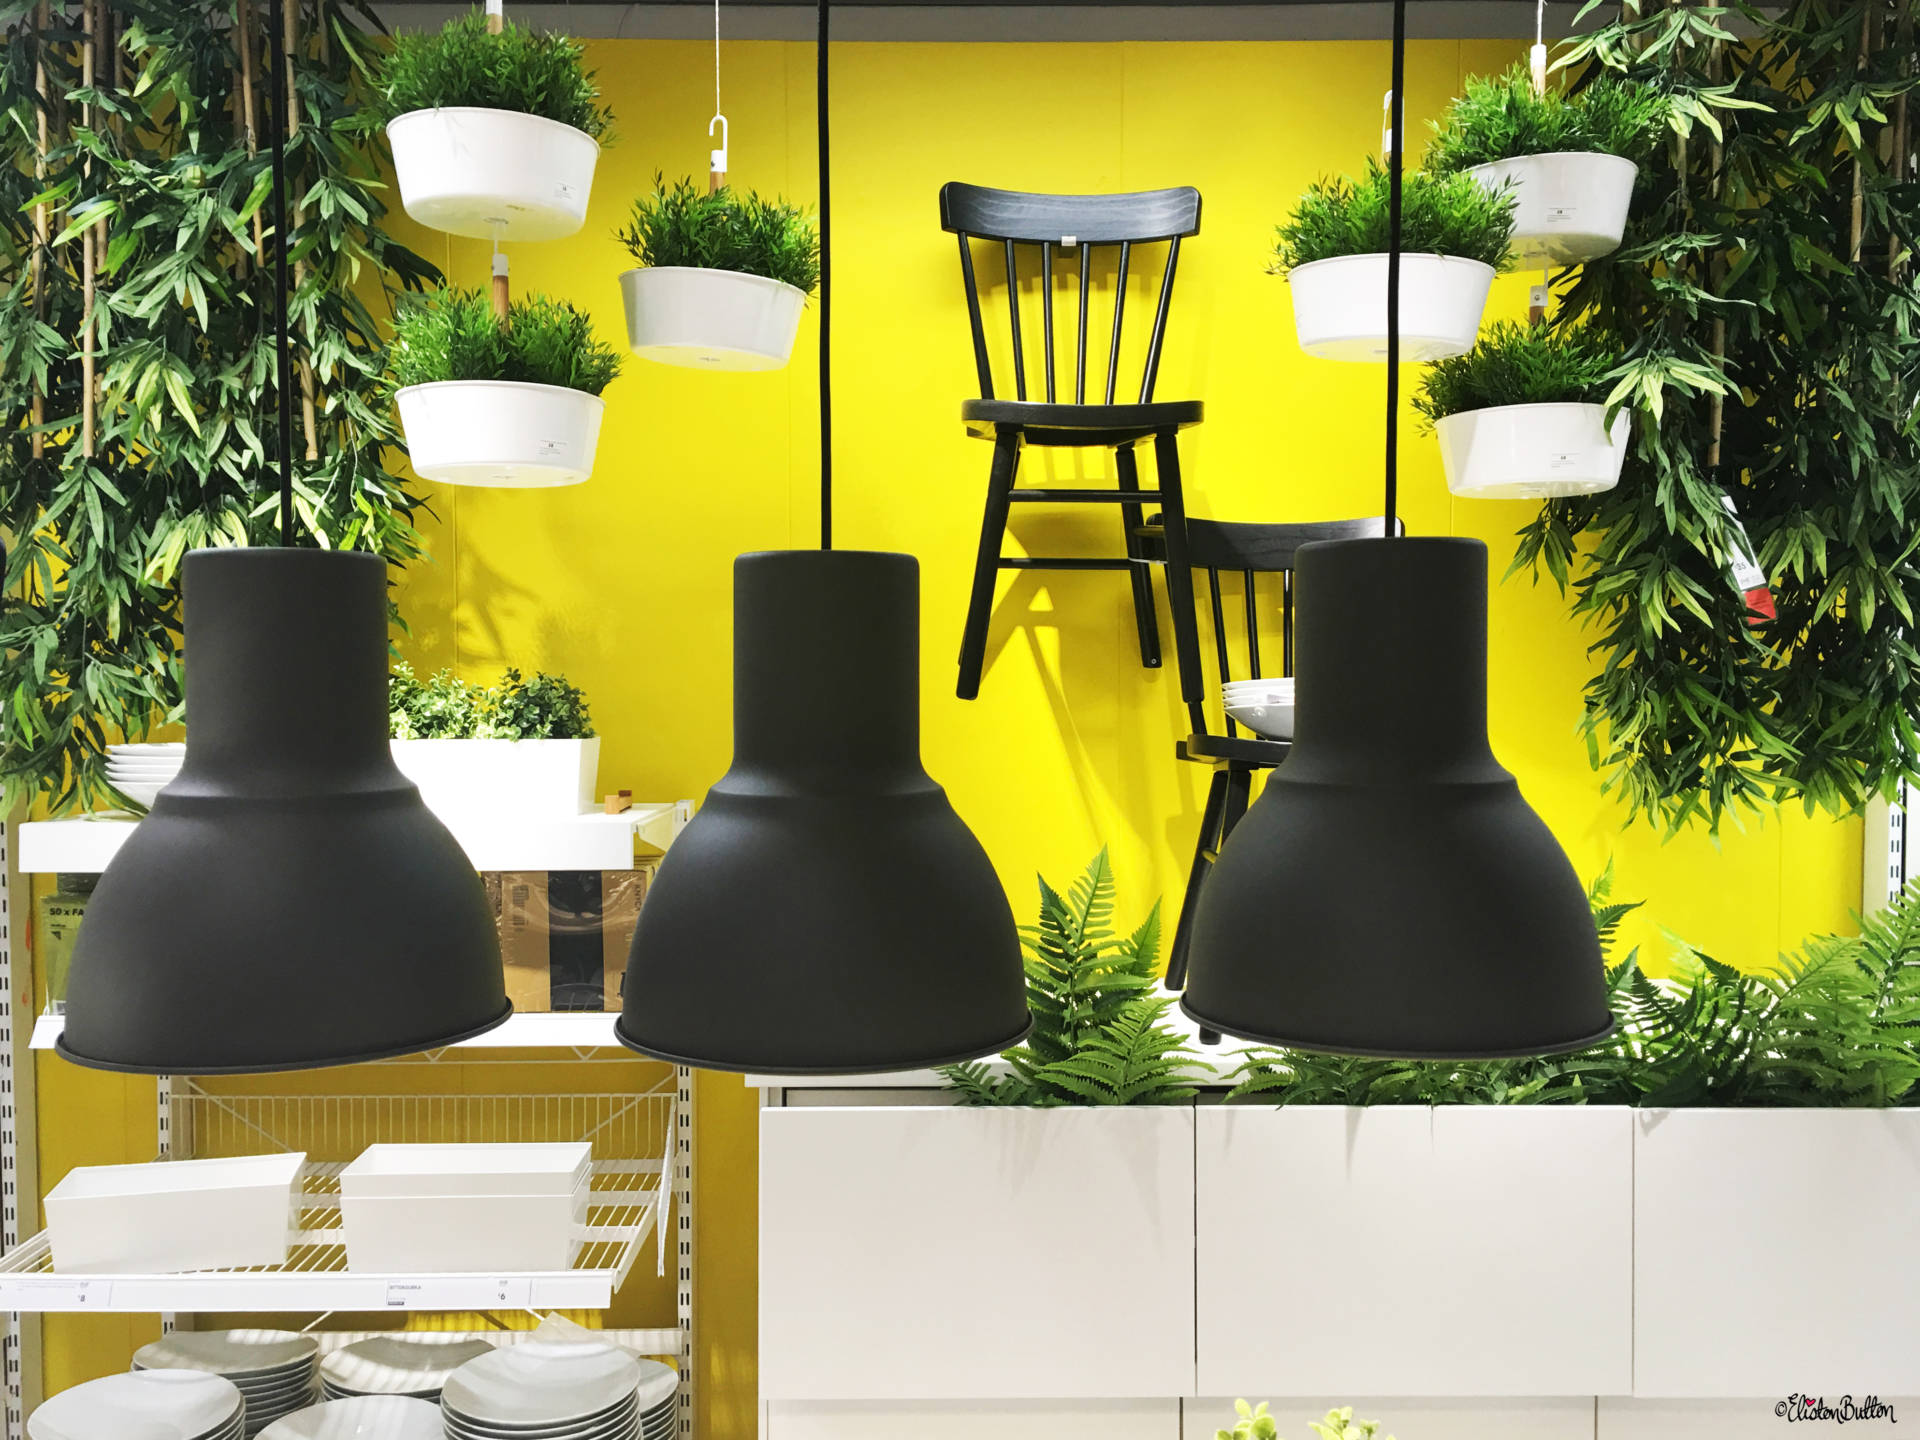 Bright Yellow Kitchen Acceessories Display With Leafy Plants At Accessories